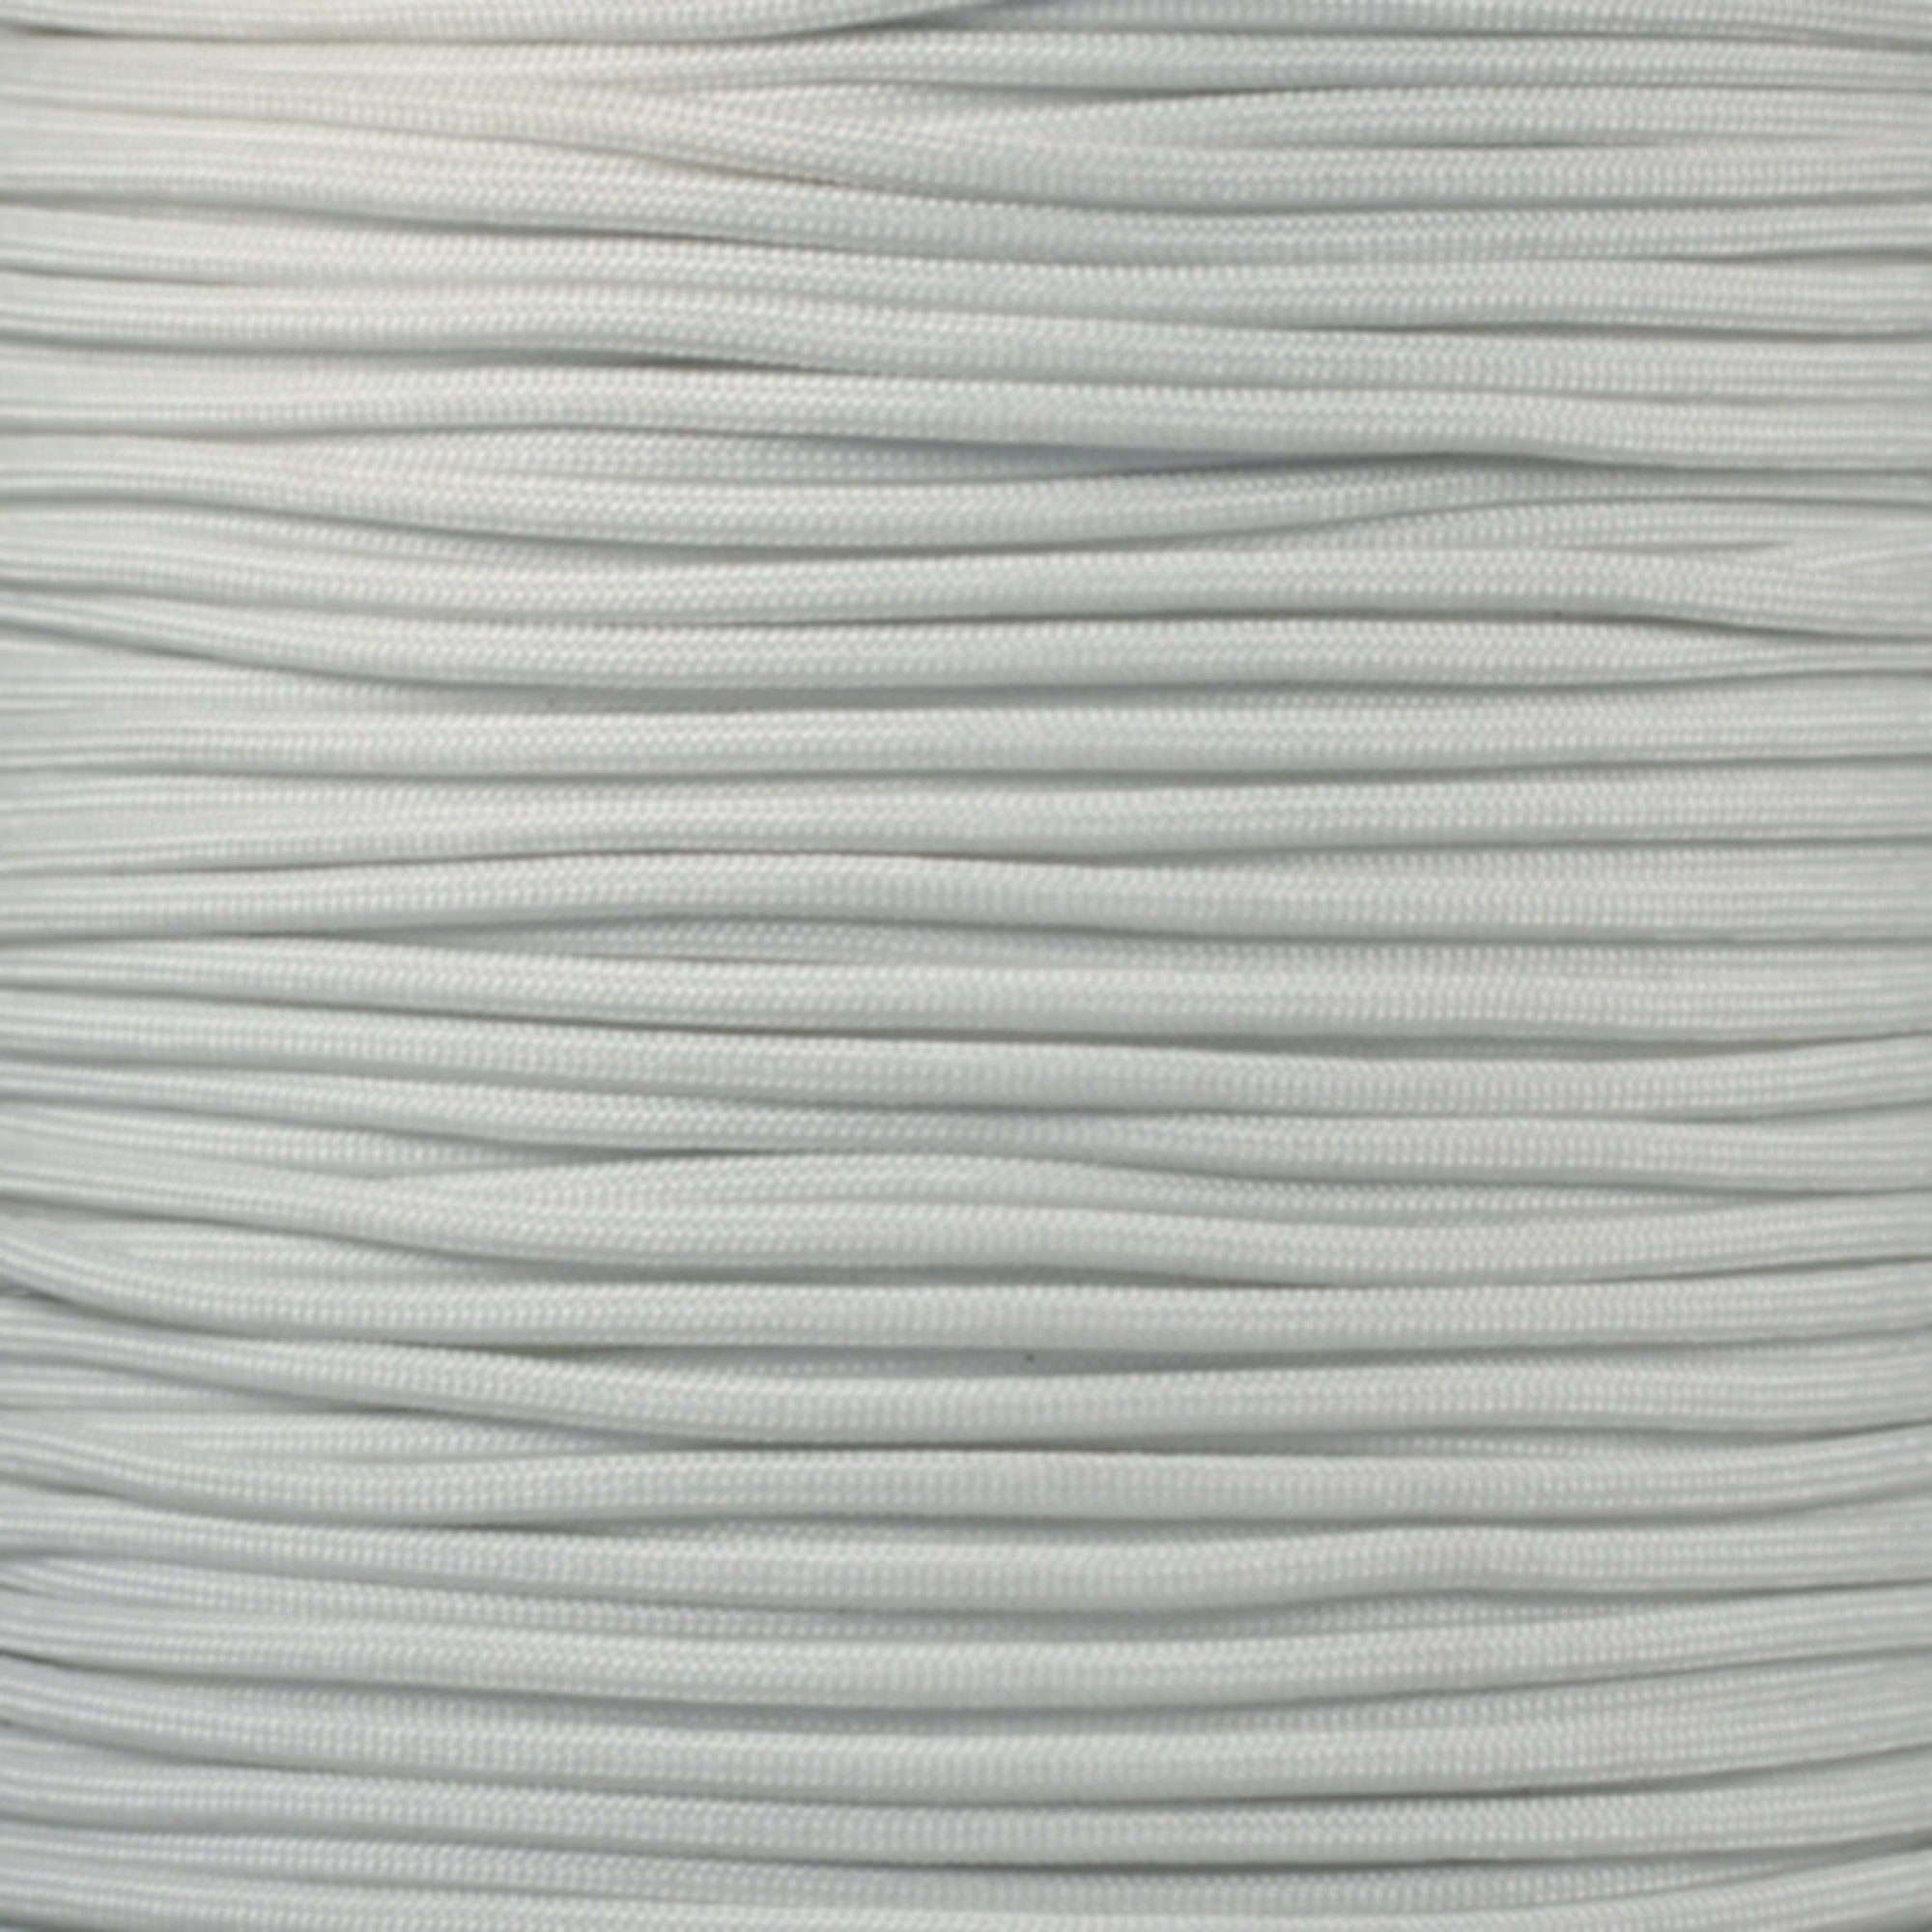 Paracord Planet Type III 7 Strand 550lb Nylon Paracord - 10, 25, 50, 100 Foot Hanks and 250, 1000 Foot Spools - Large Variety of Colors and Patterns